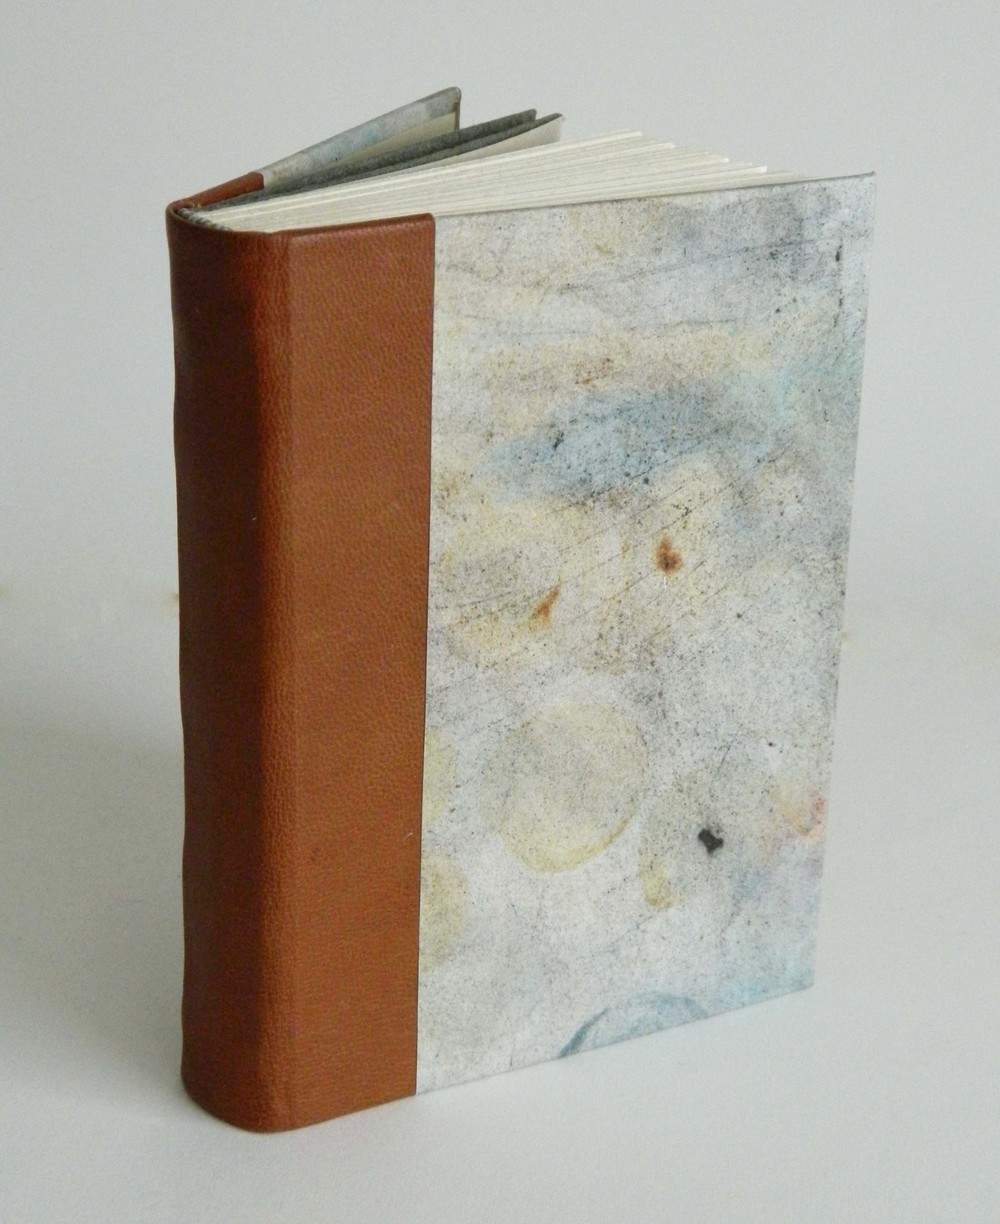 Rounded case binding